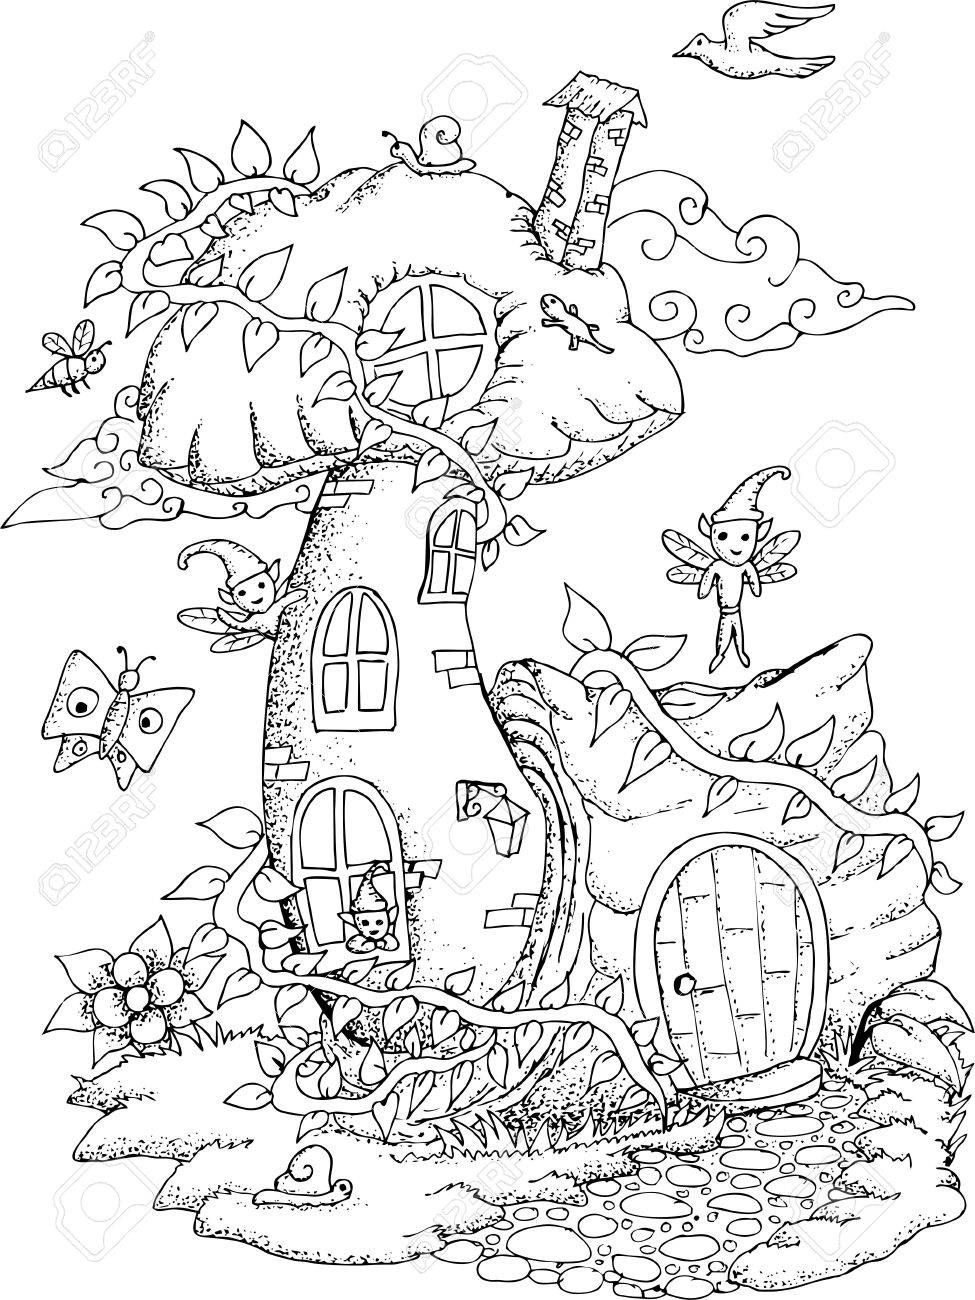 Image result for fairy house drawing